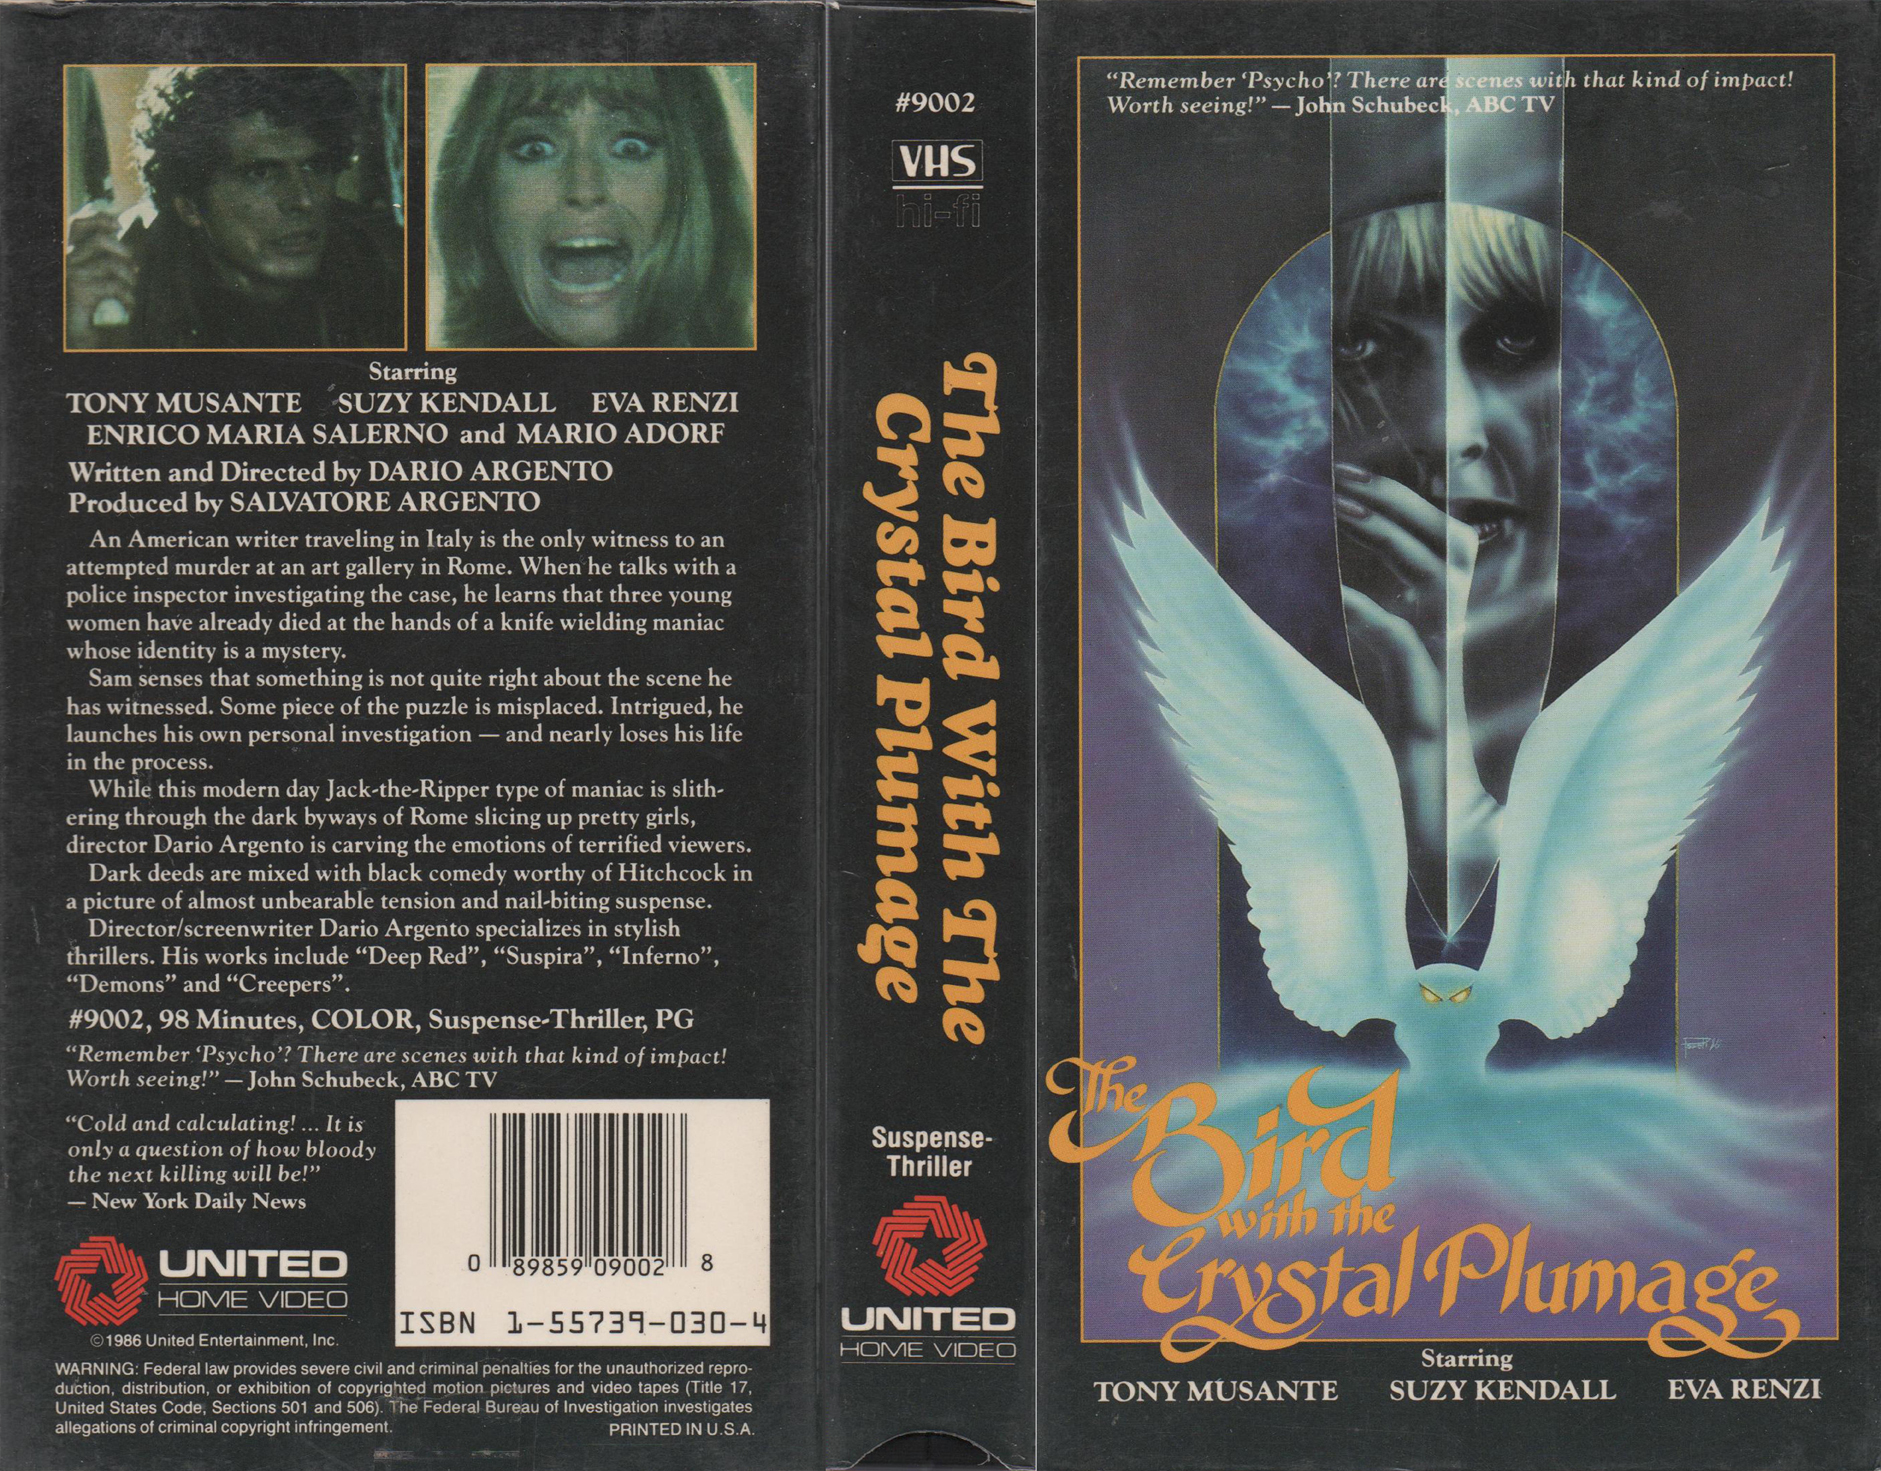 vhs wasteland your home for high resolution scans of rare the bird the crystal plumage submitted by ryan gelatin